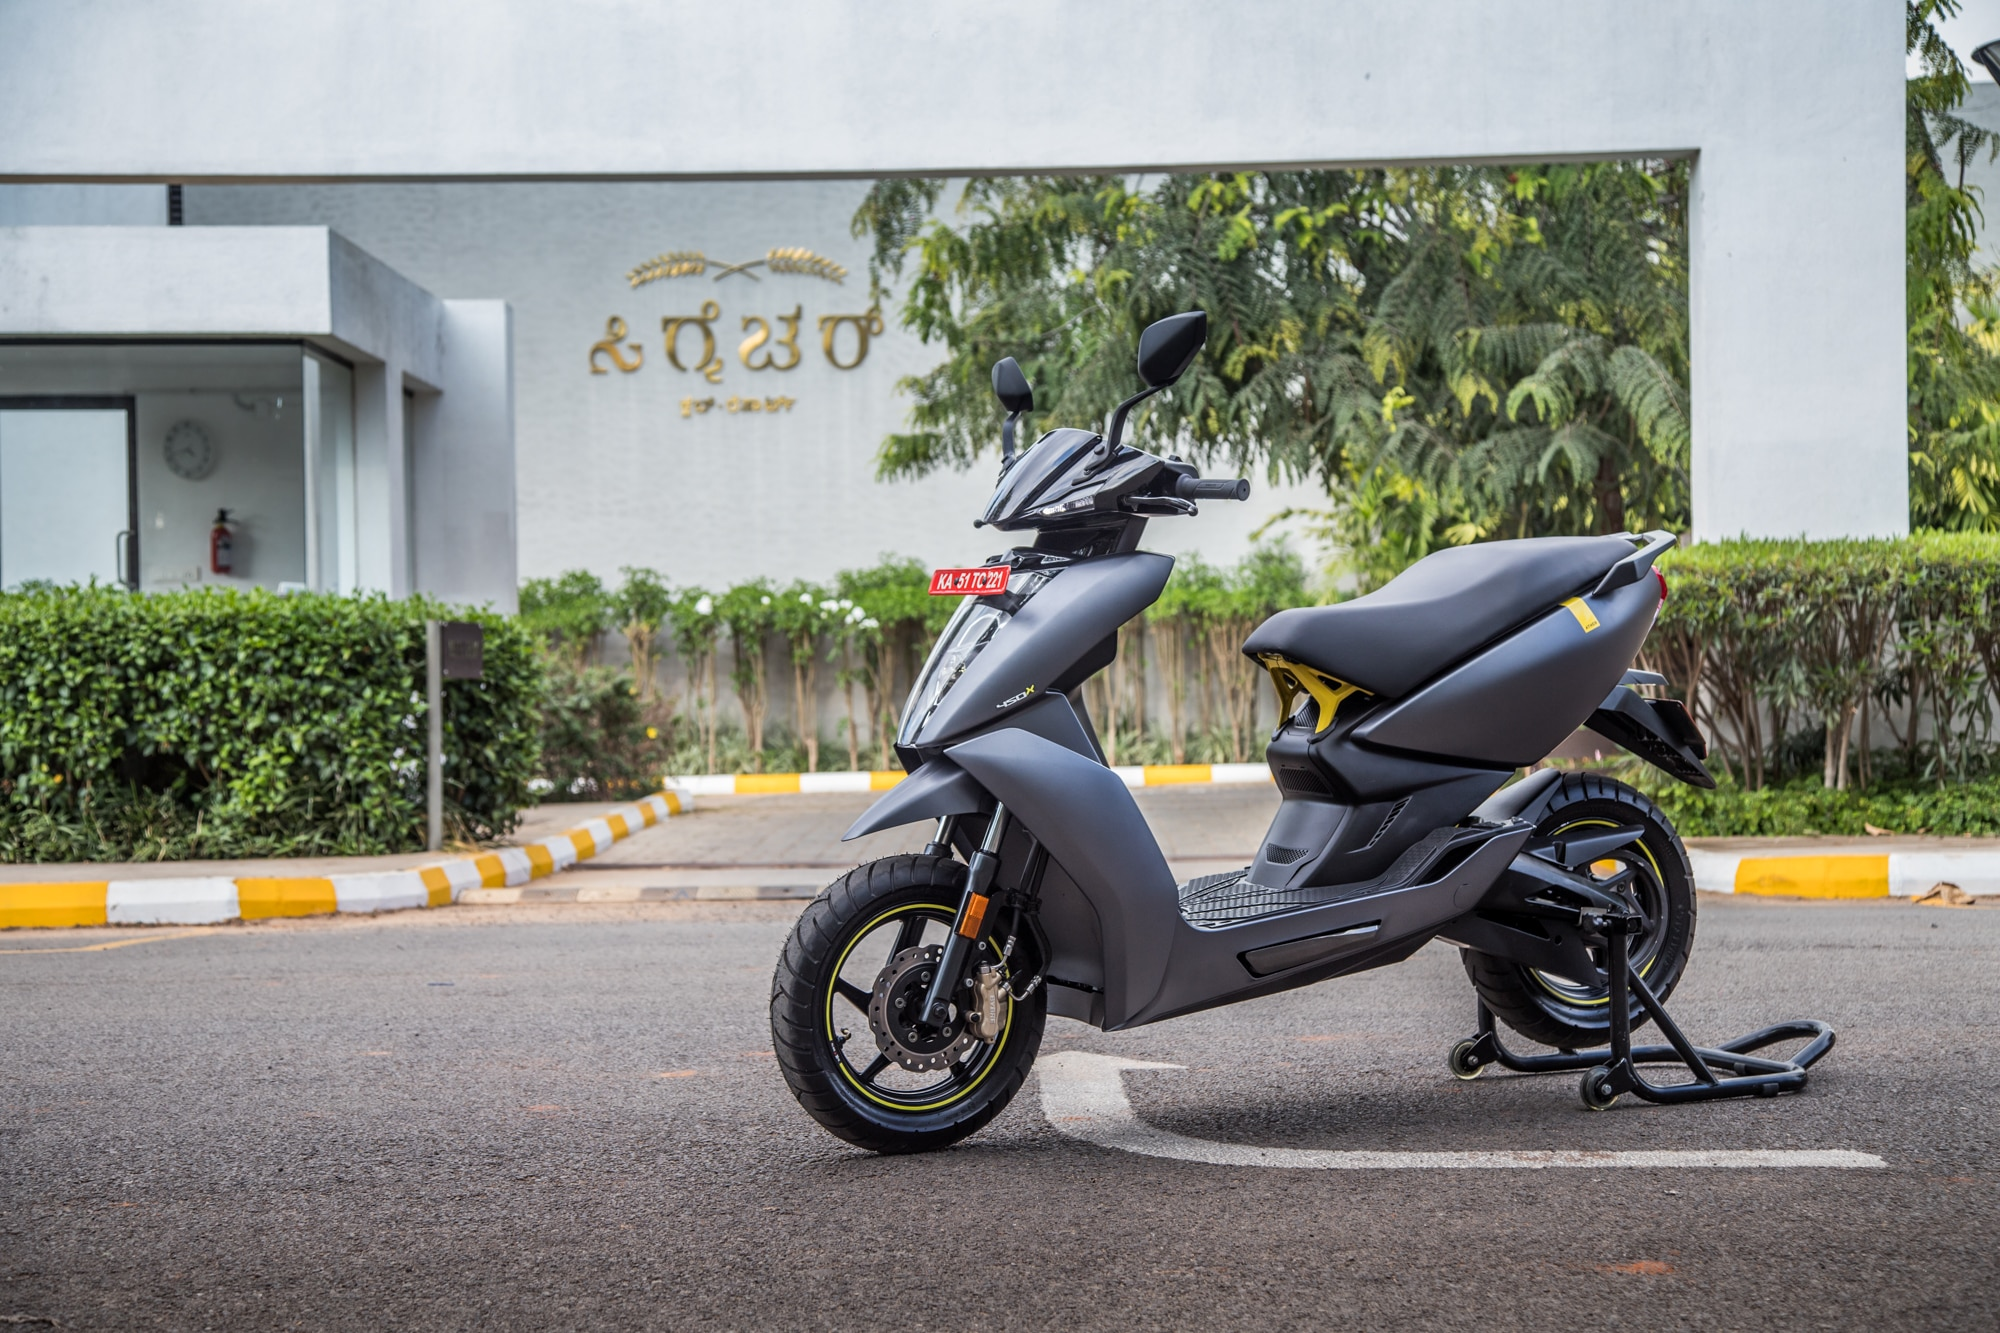 Ather 450X: All You Need To Know